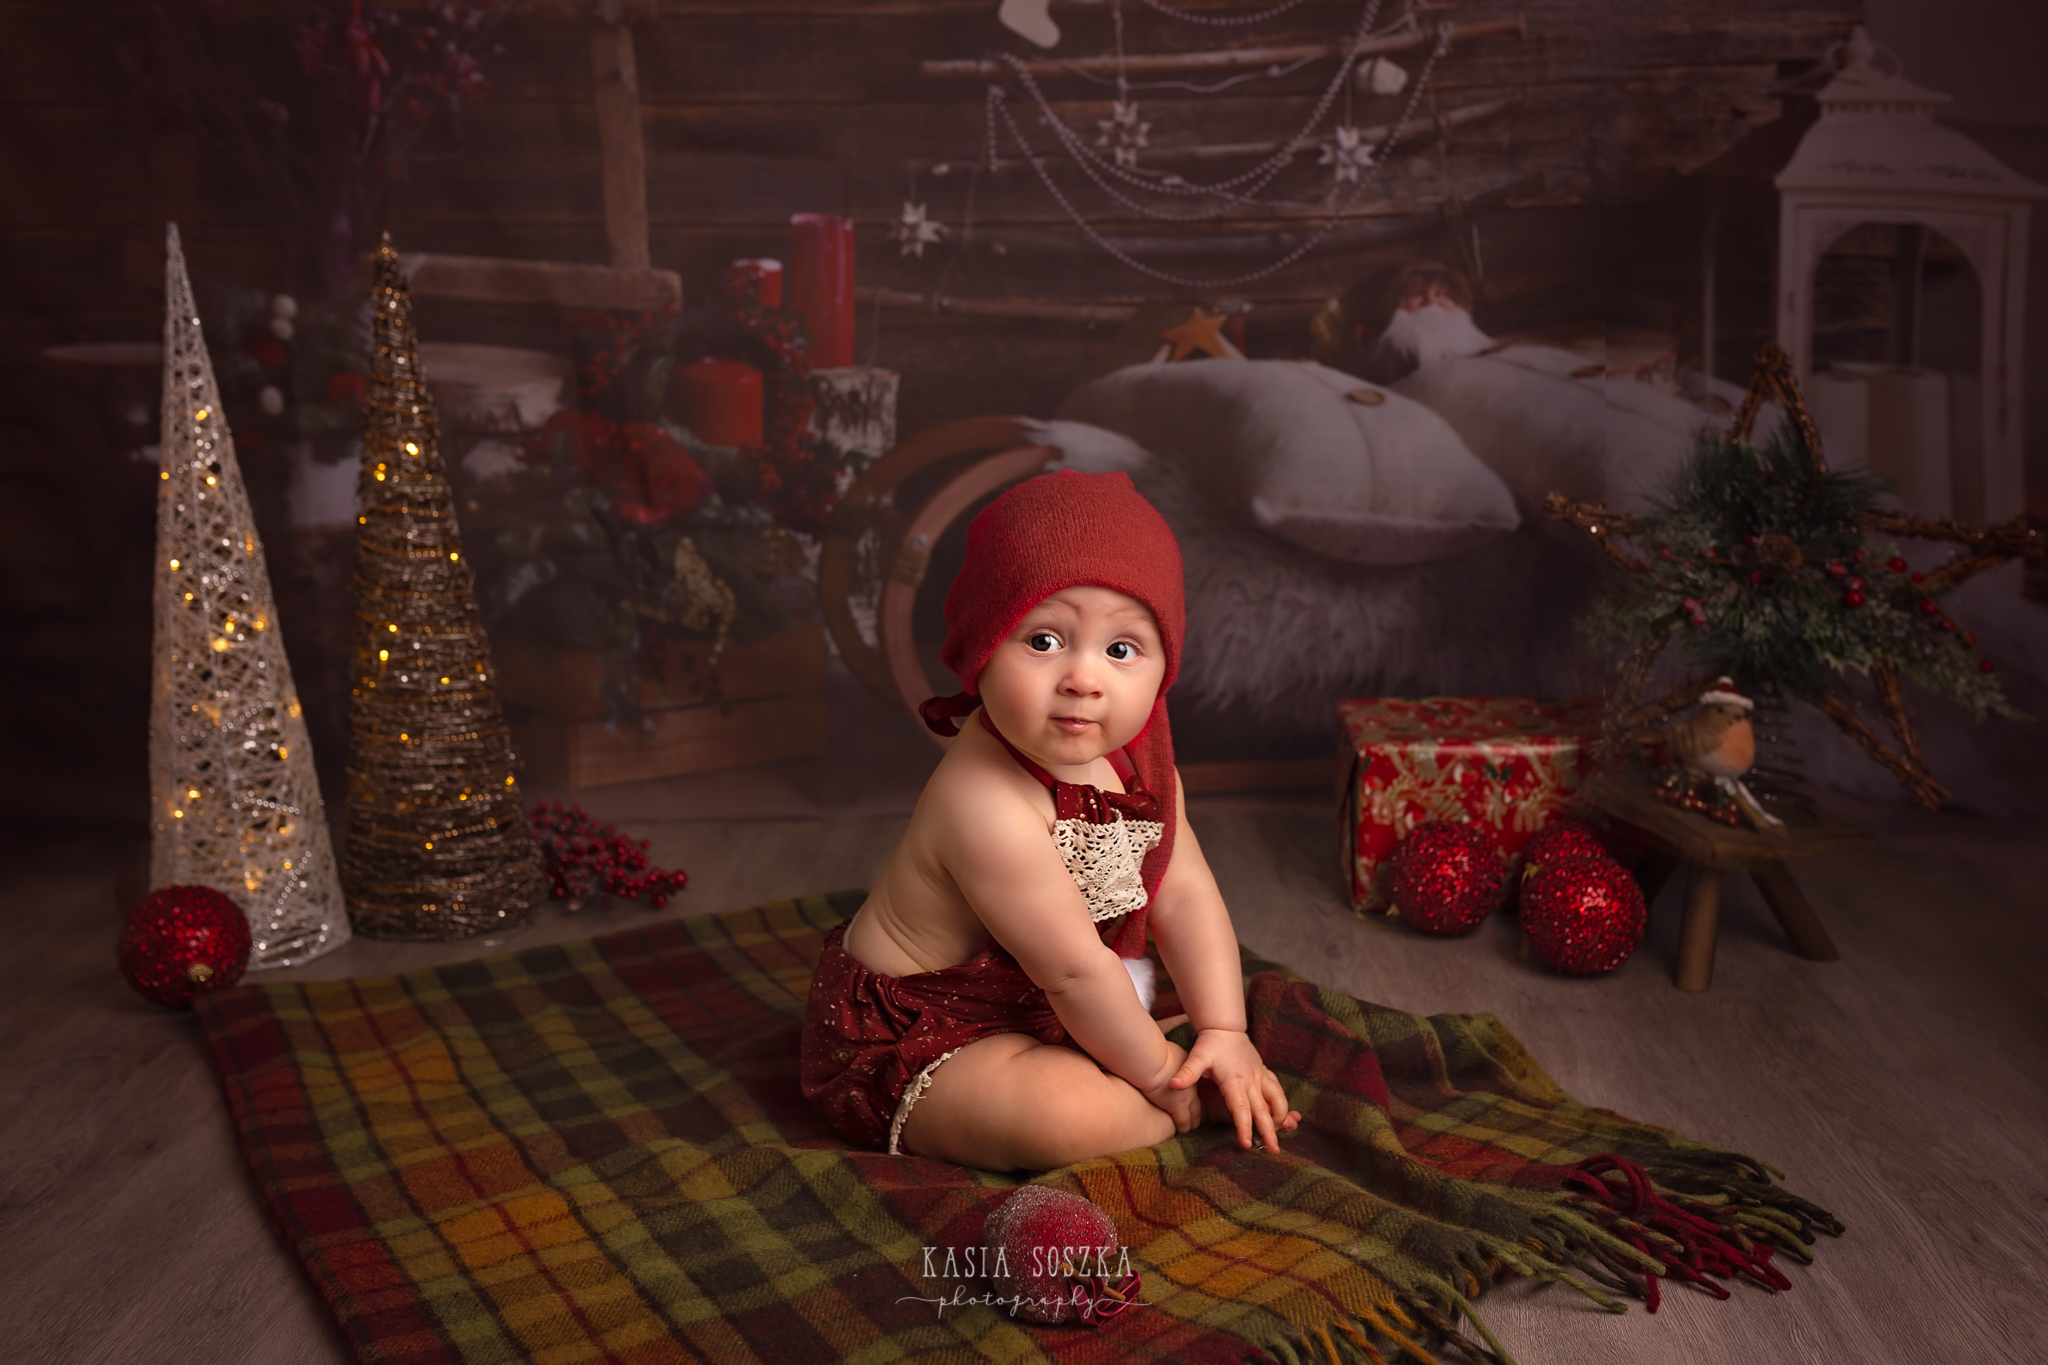 Child photographer Leeds, York, Bradford, Harrogate. Christmas Mini Sessions 2018 Leeds: cute baby girl in a Christmas outfit